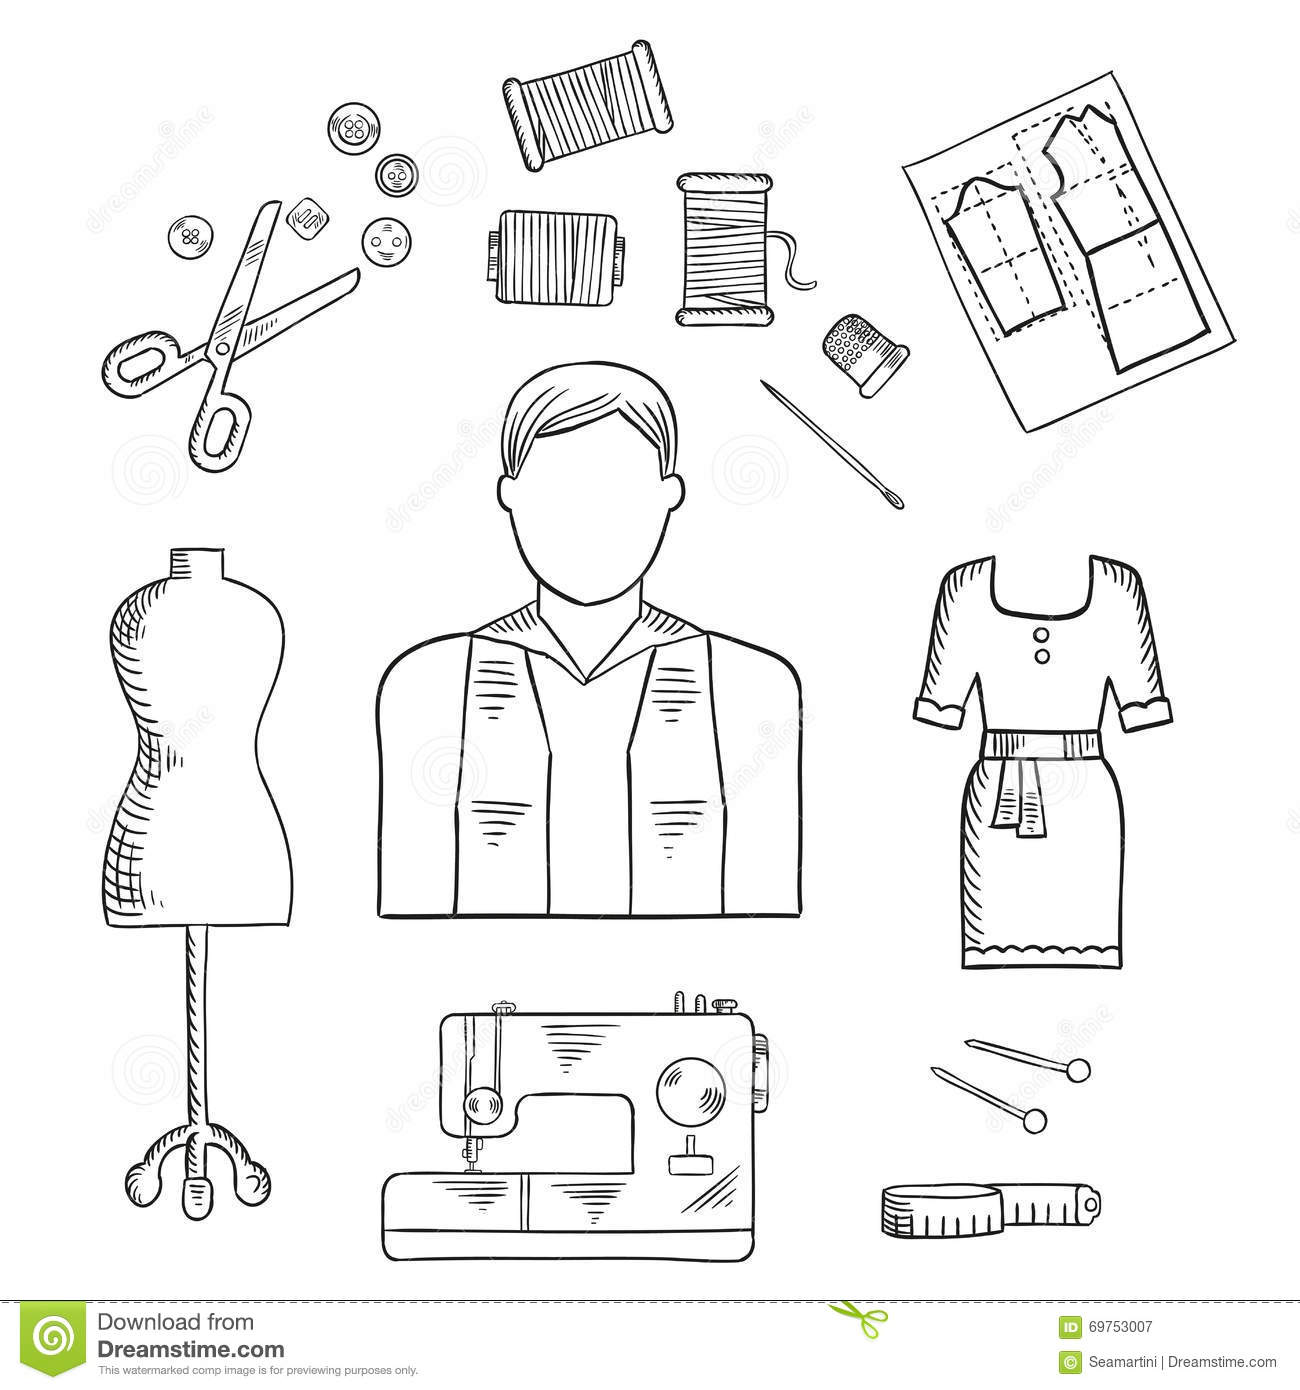 Tailor Or Fashion Designer Profession Sketch Icon Stock Vector Illustration Of Measure Cloth